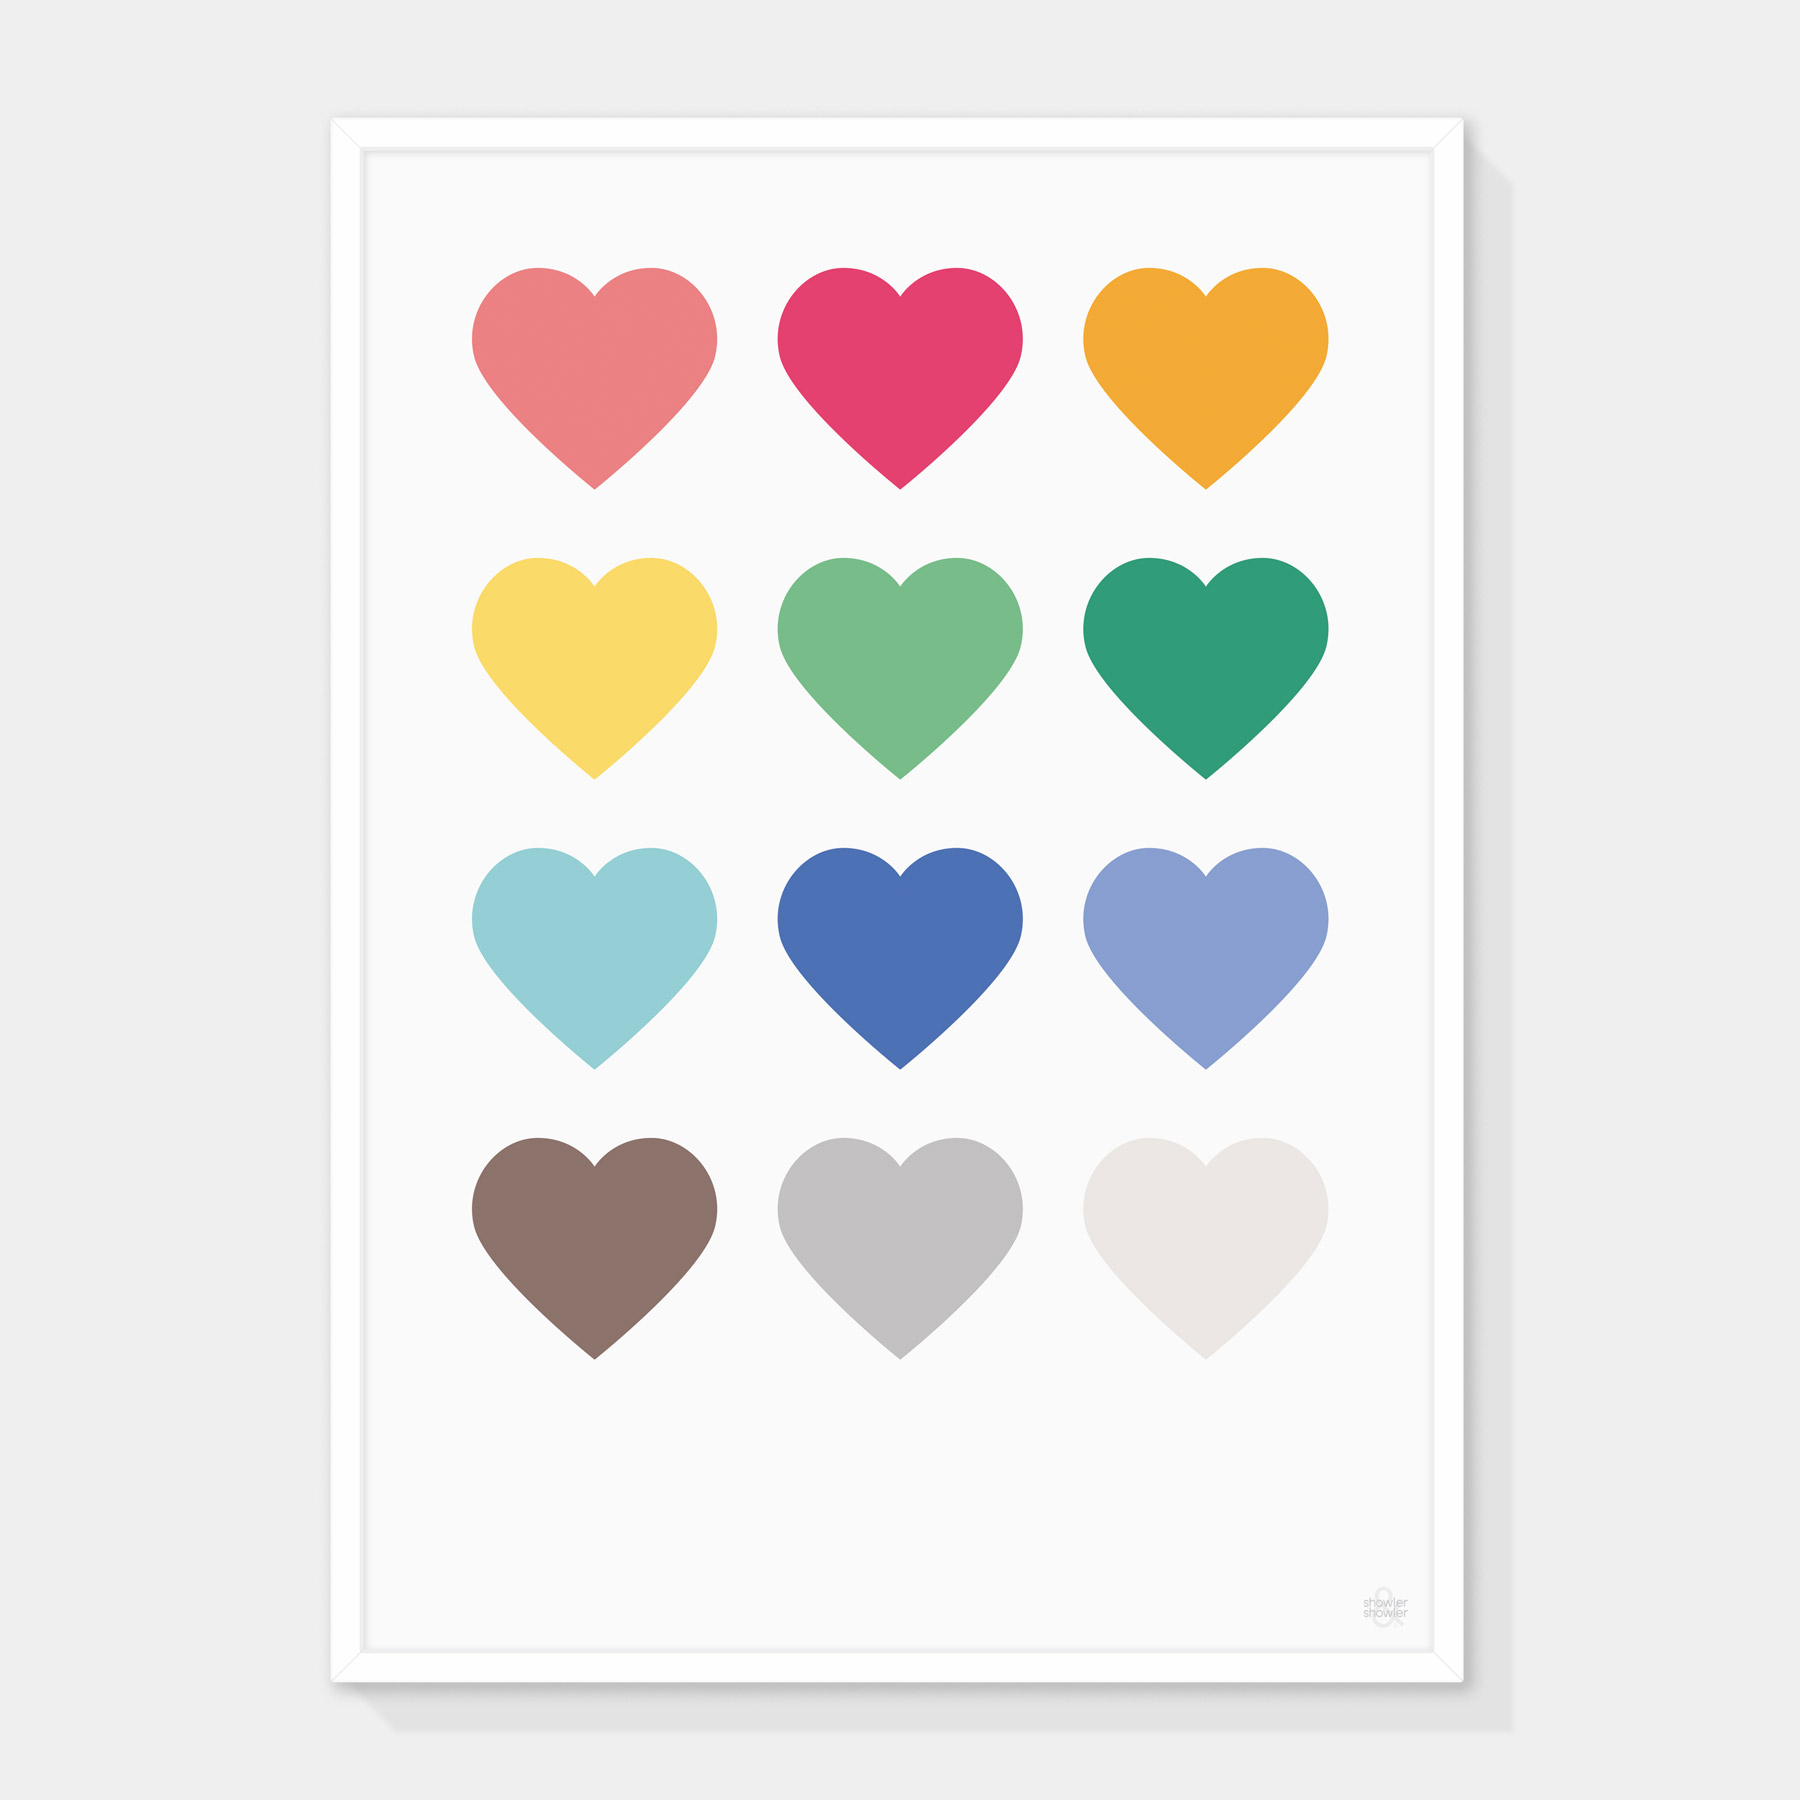 Love-Hearts-Grid-Framed.jpg